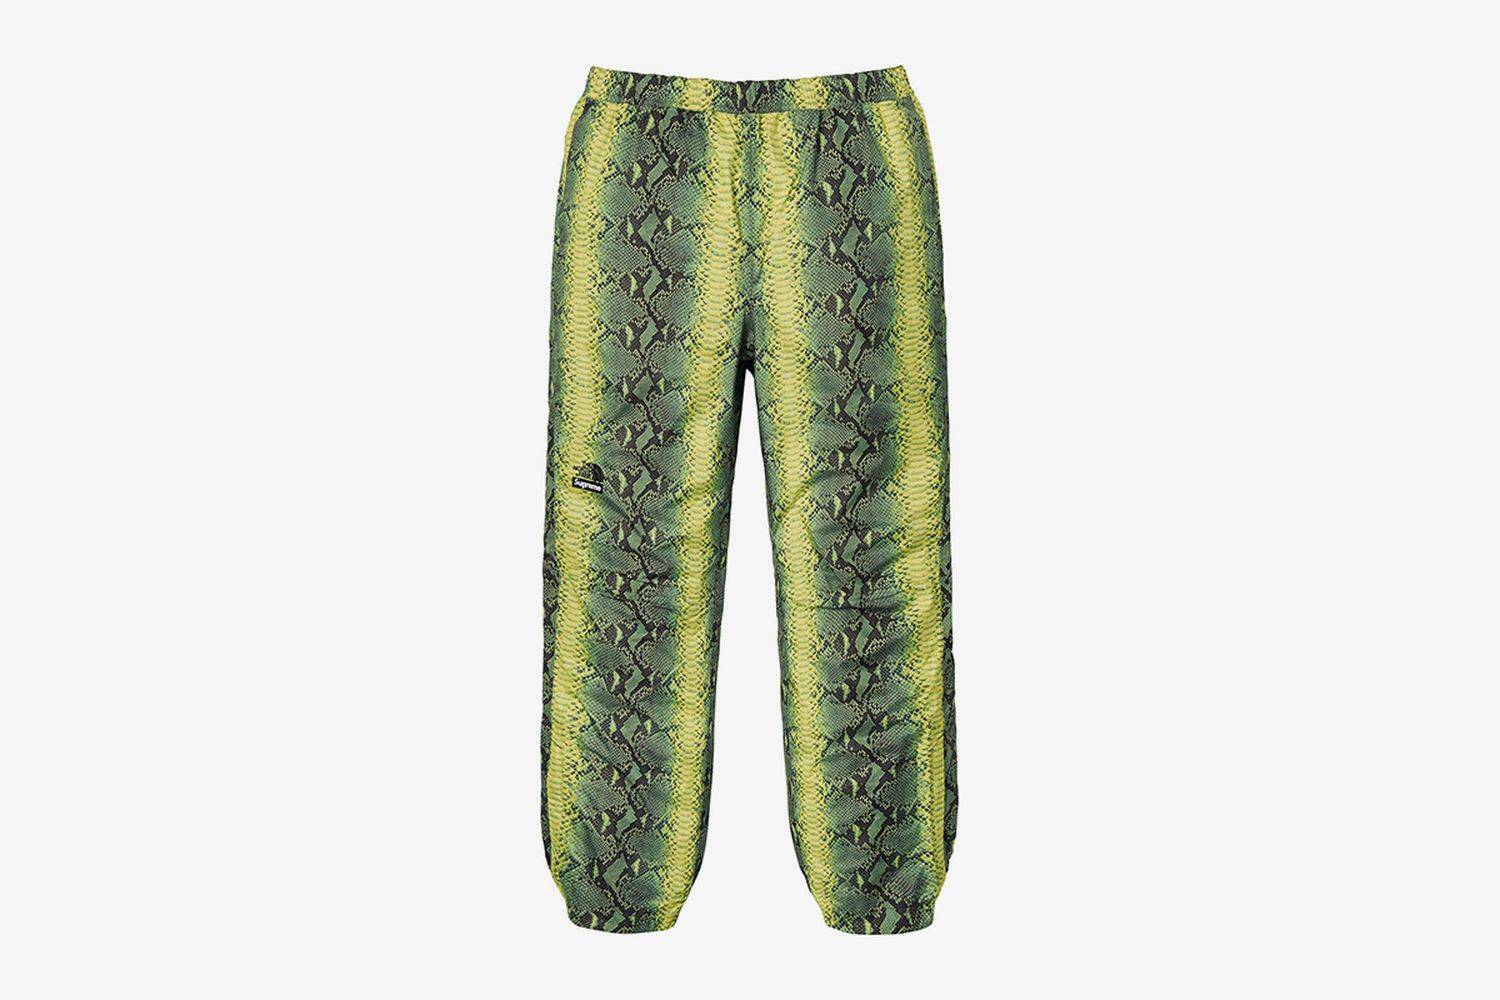 Snakeskin Taped Seam Pant